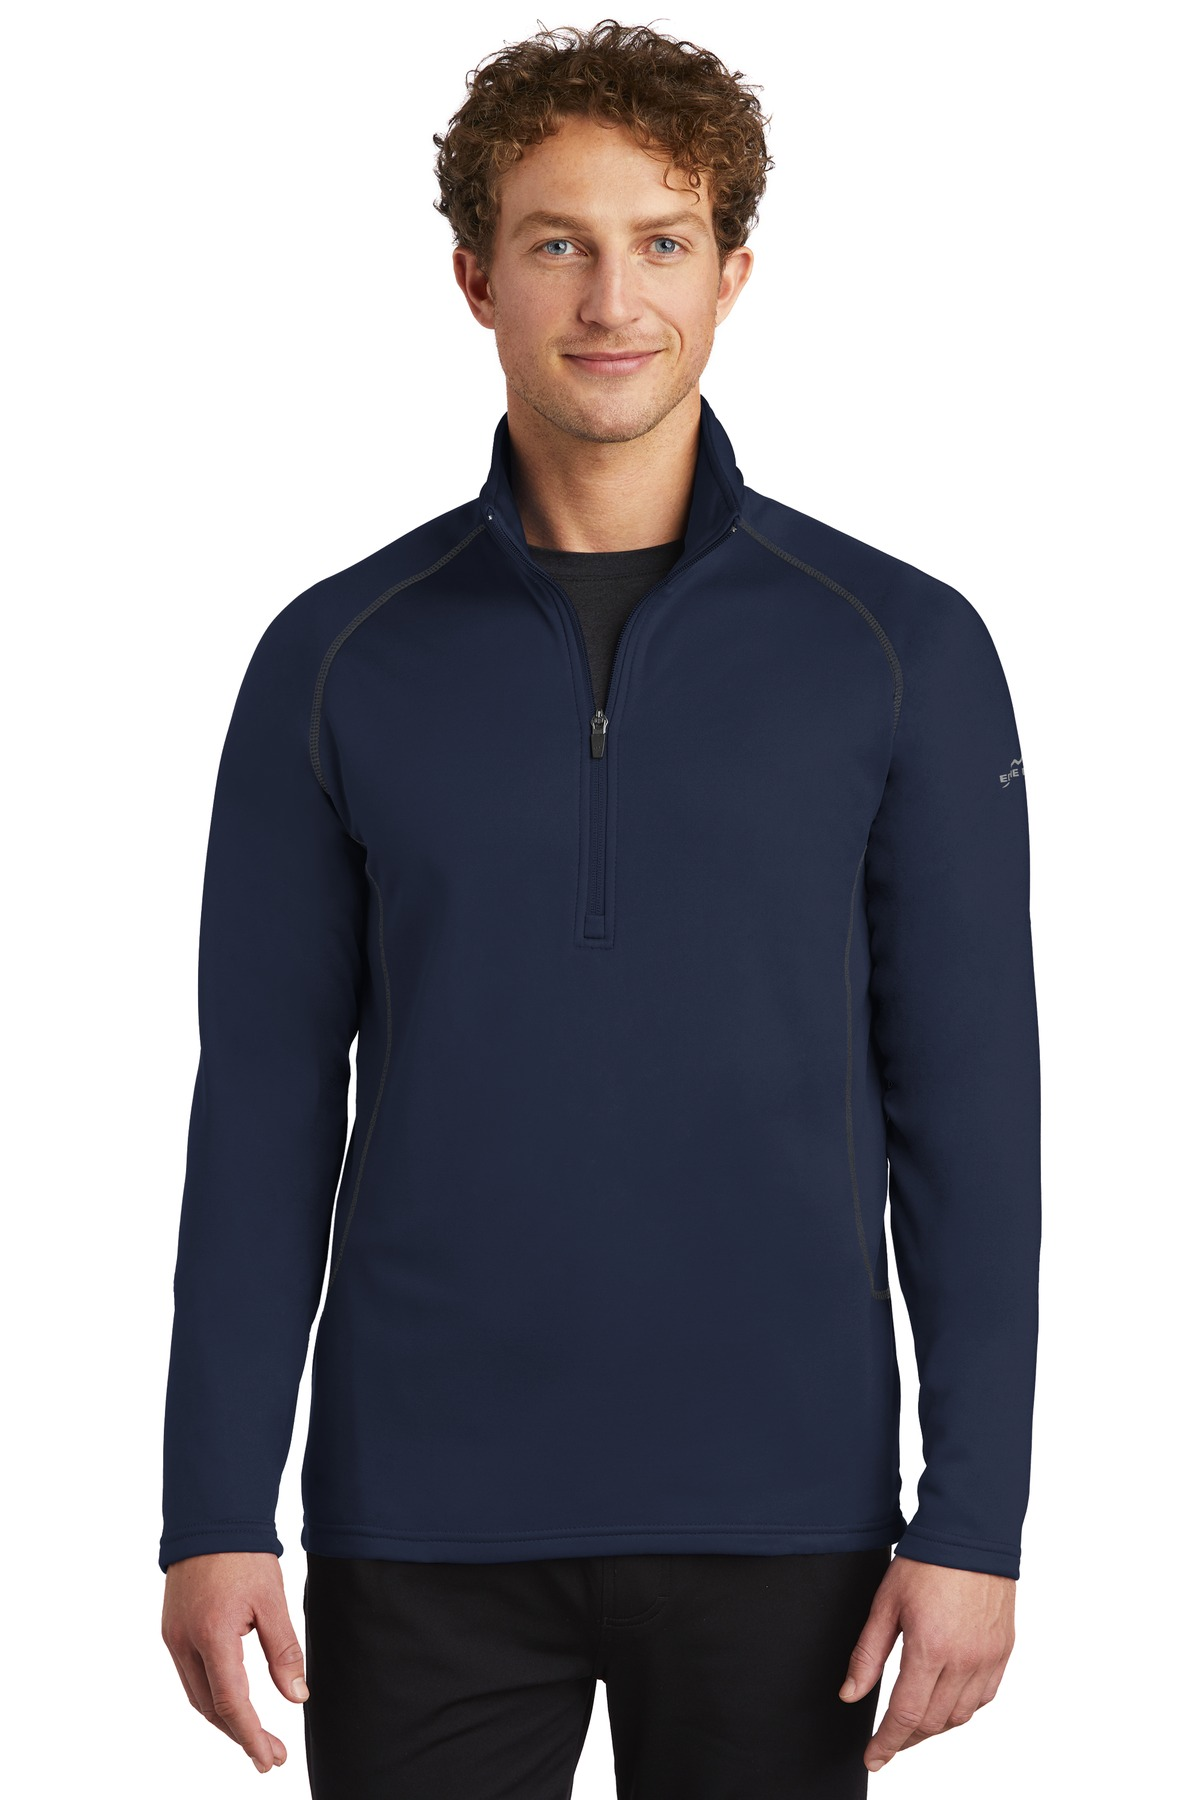 Eddie Bauer ®  Smooth Fleece Base Layer 1/2-Zip. EB236 - River Blue